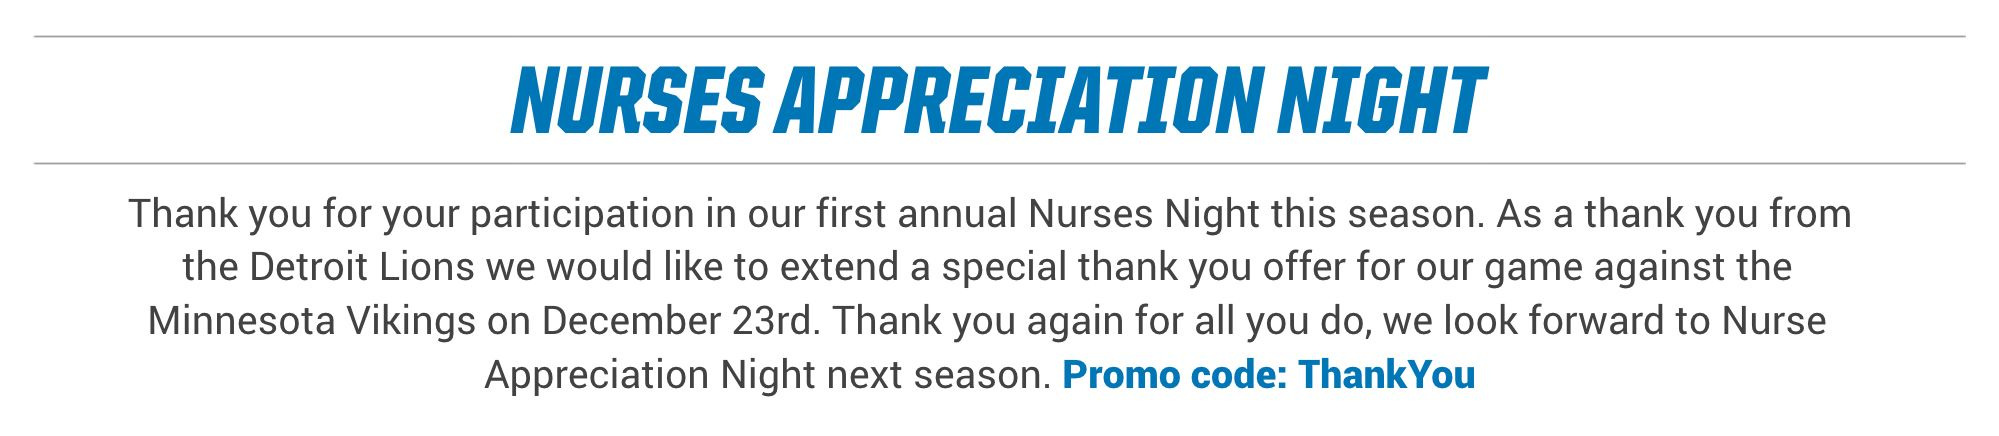 nurses-night-header